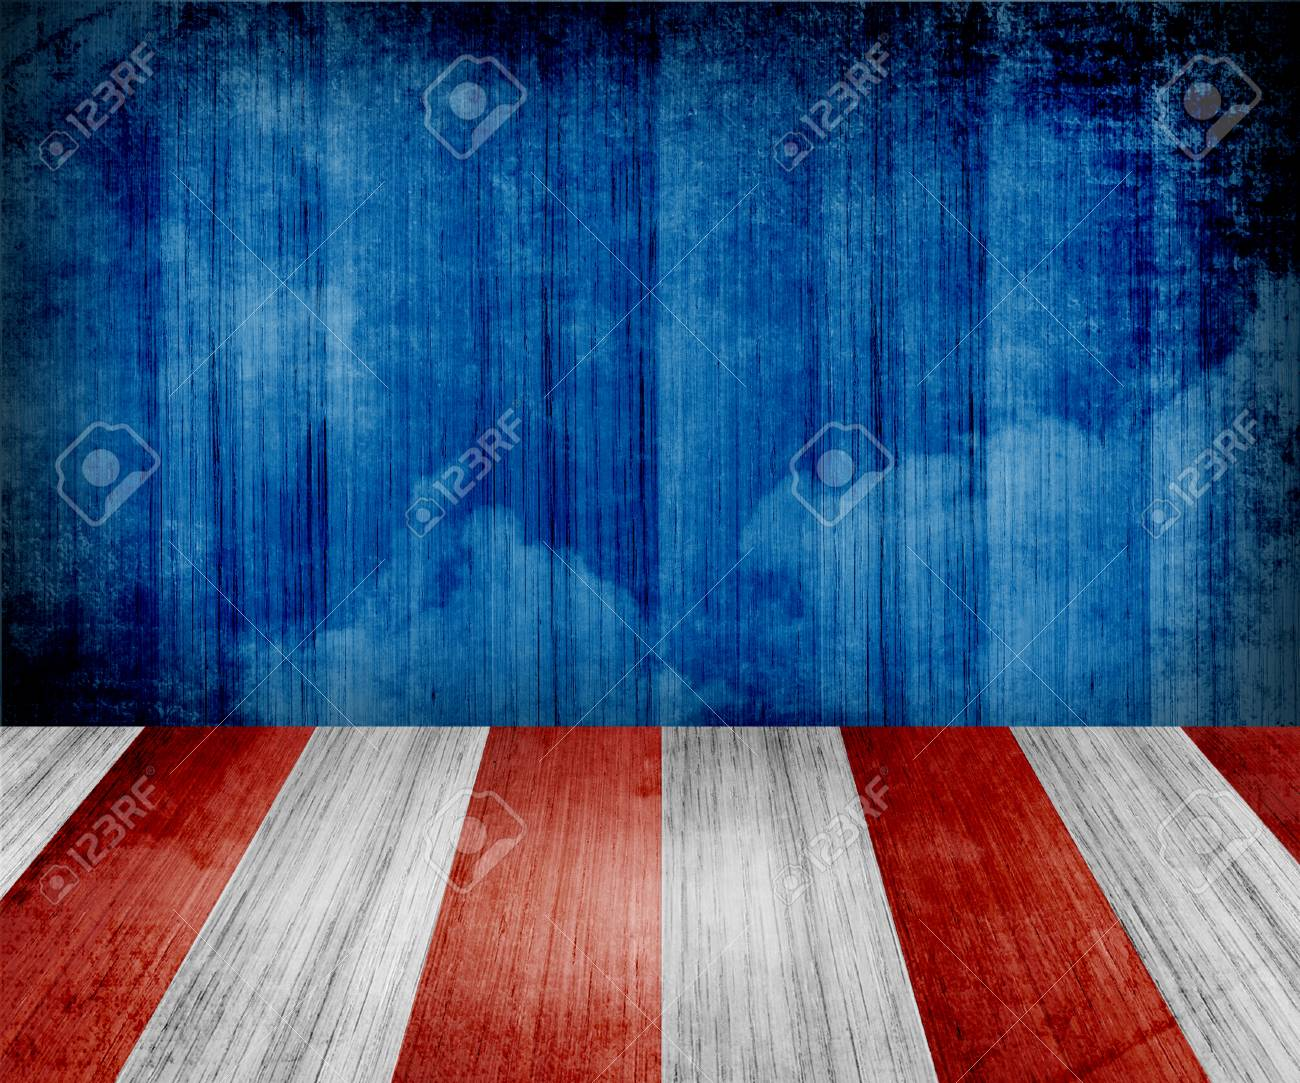 USA style background - empty wooden table for display montages - 43678911